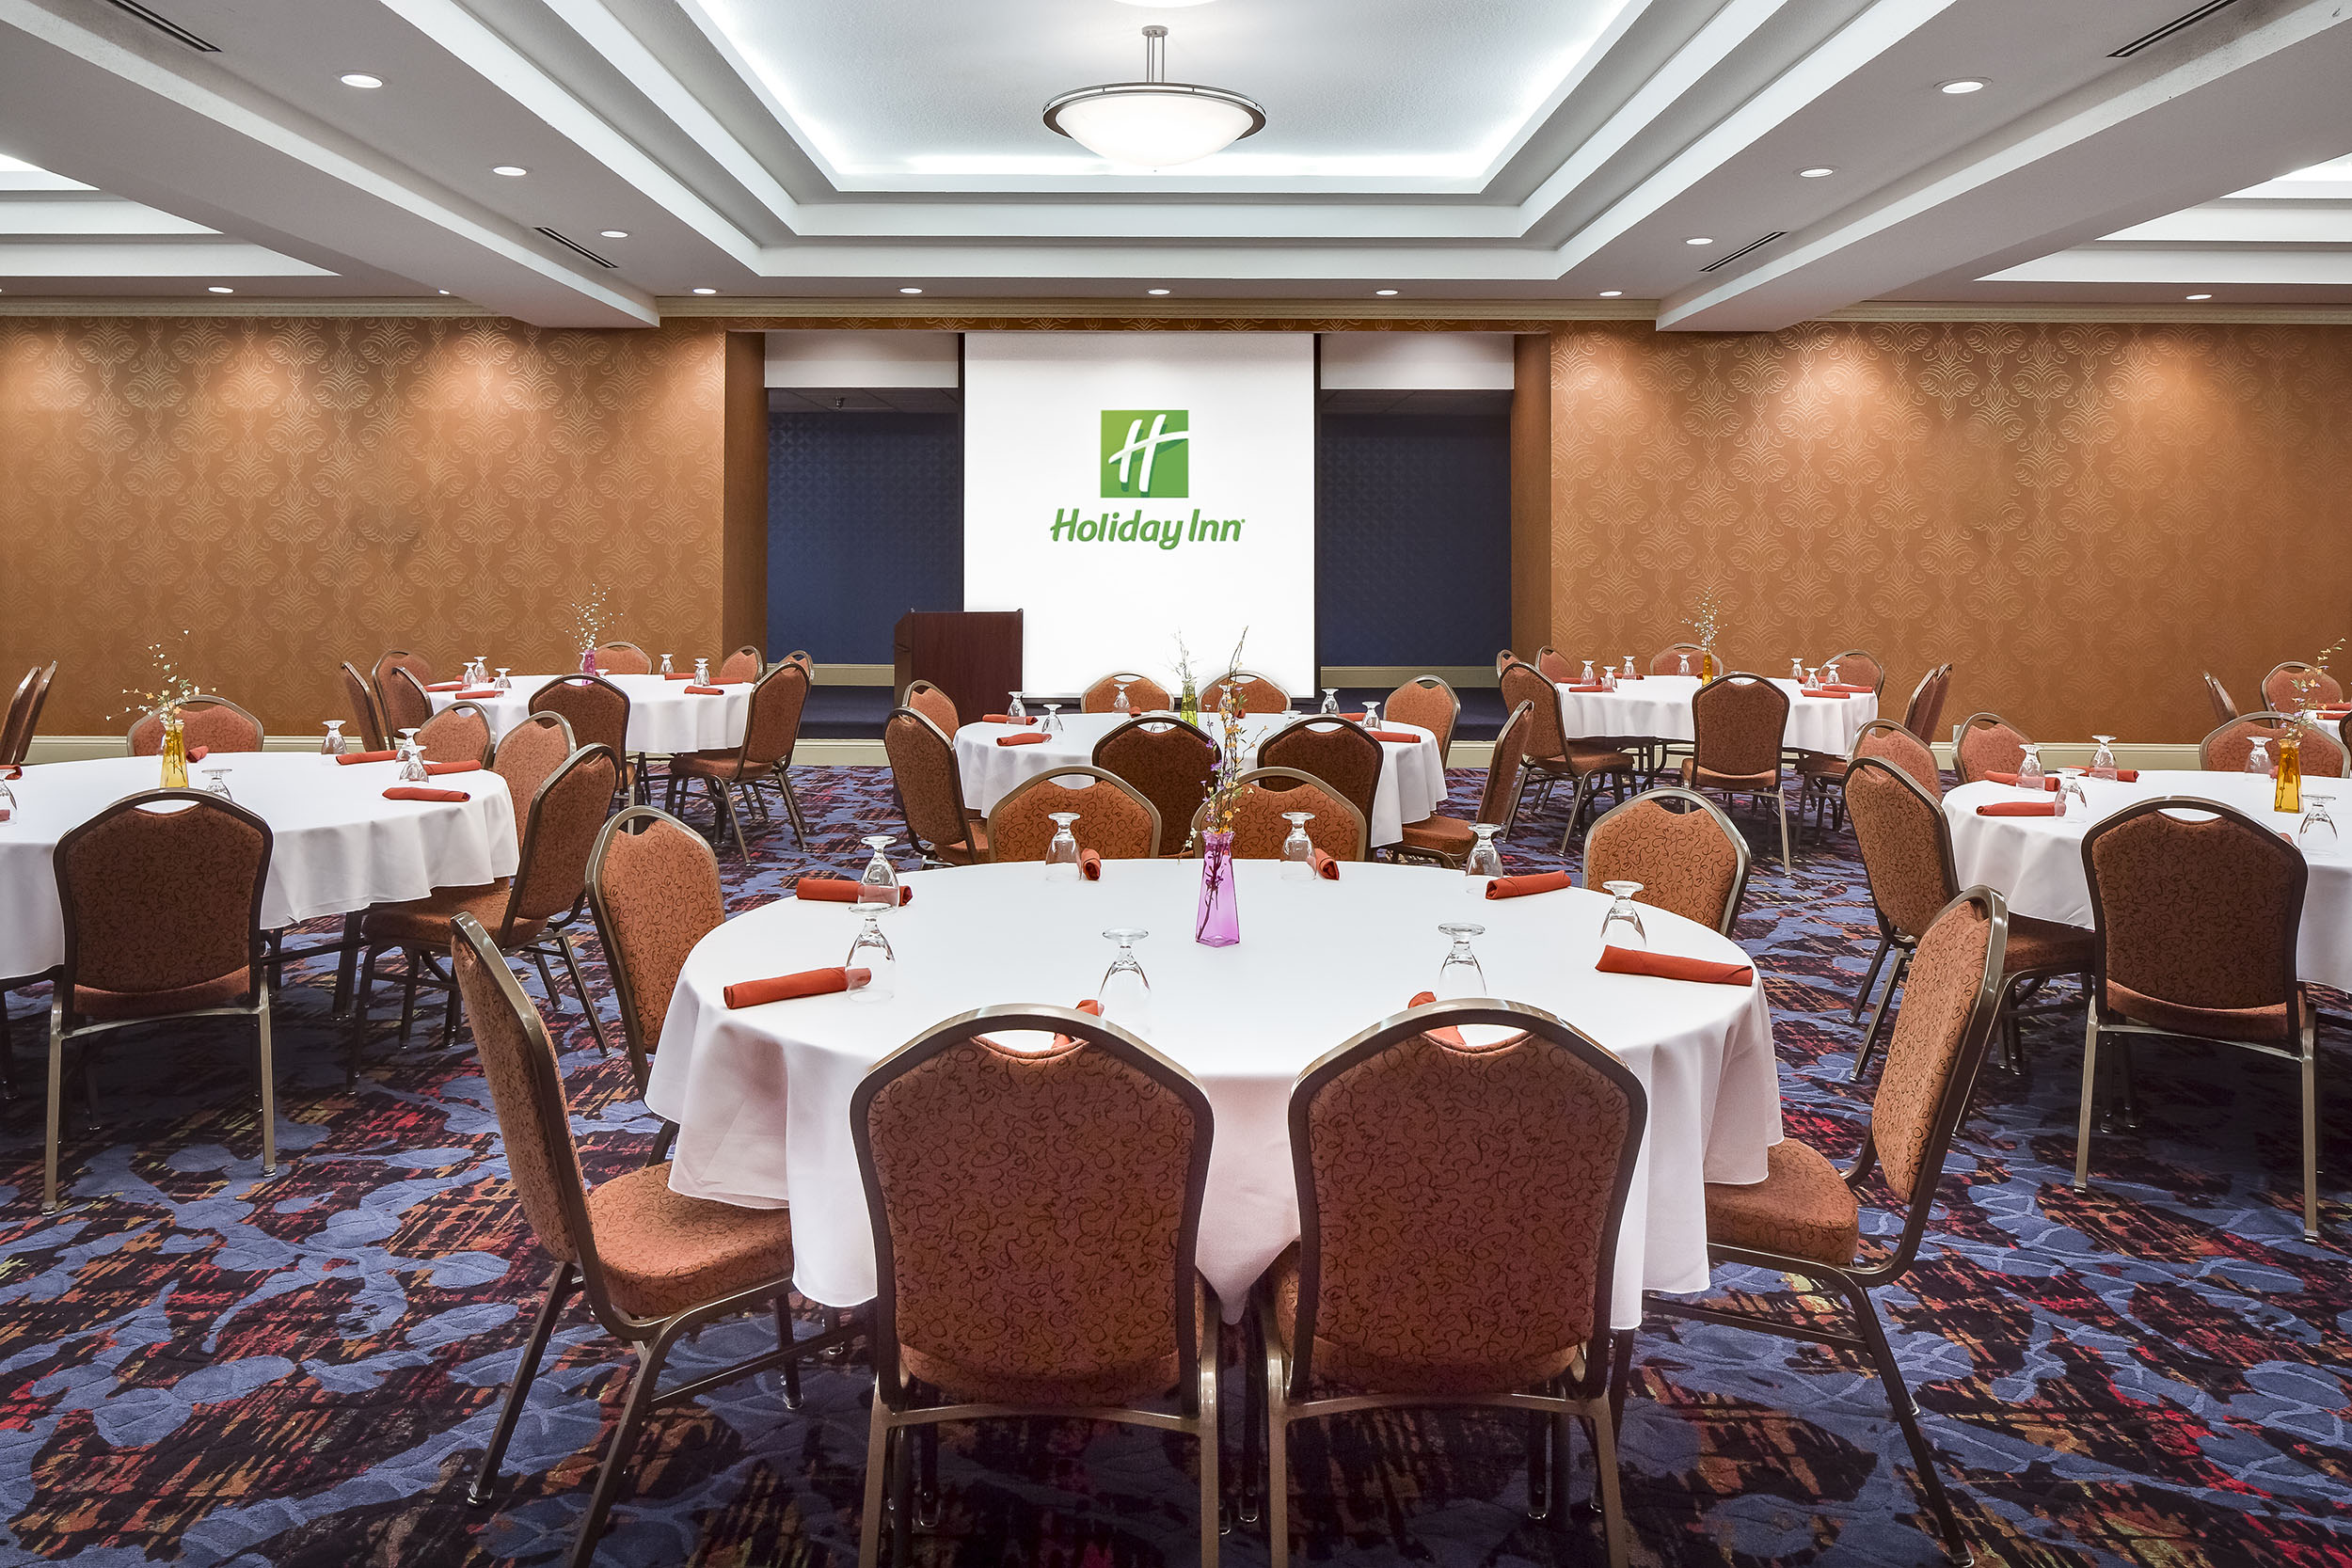 Dubuque-HolidayInn-1w.jpg